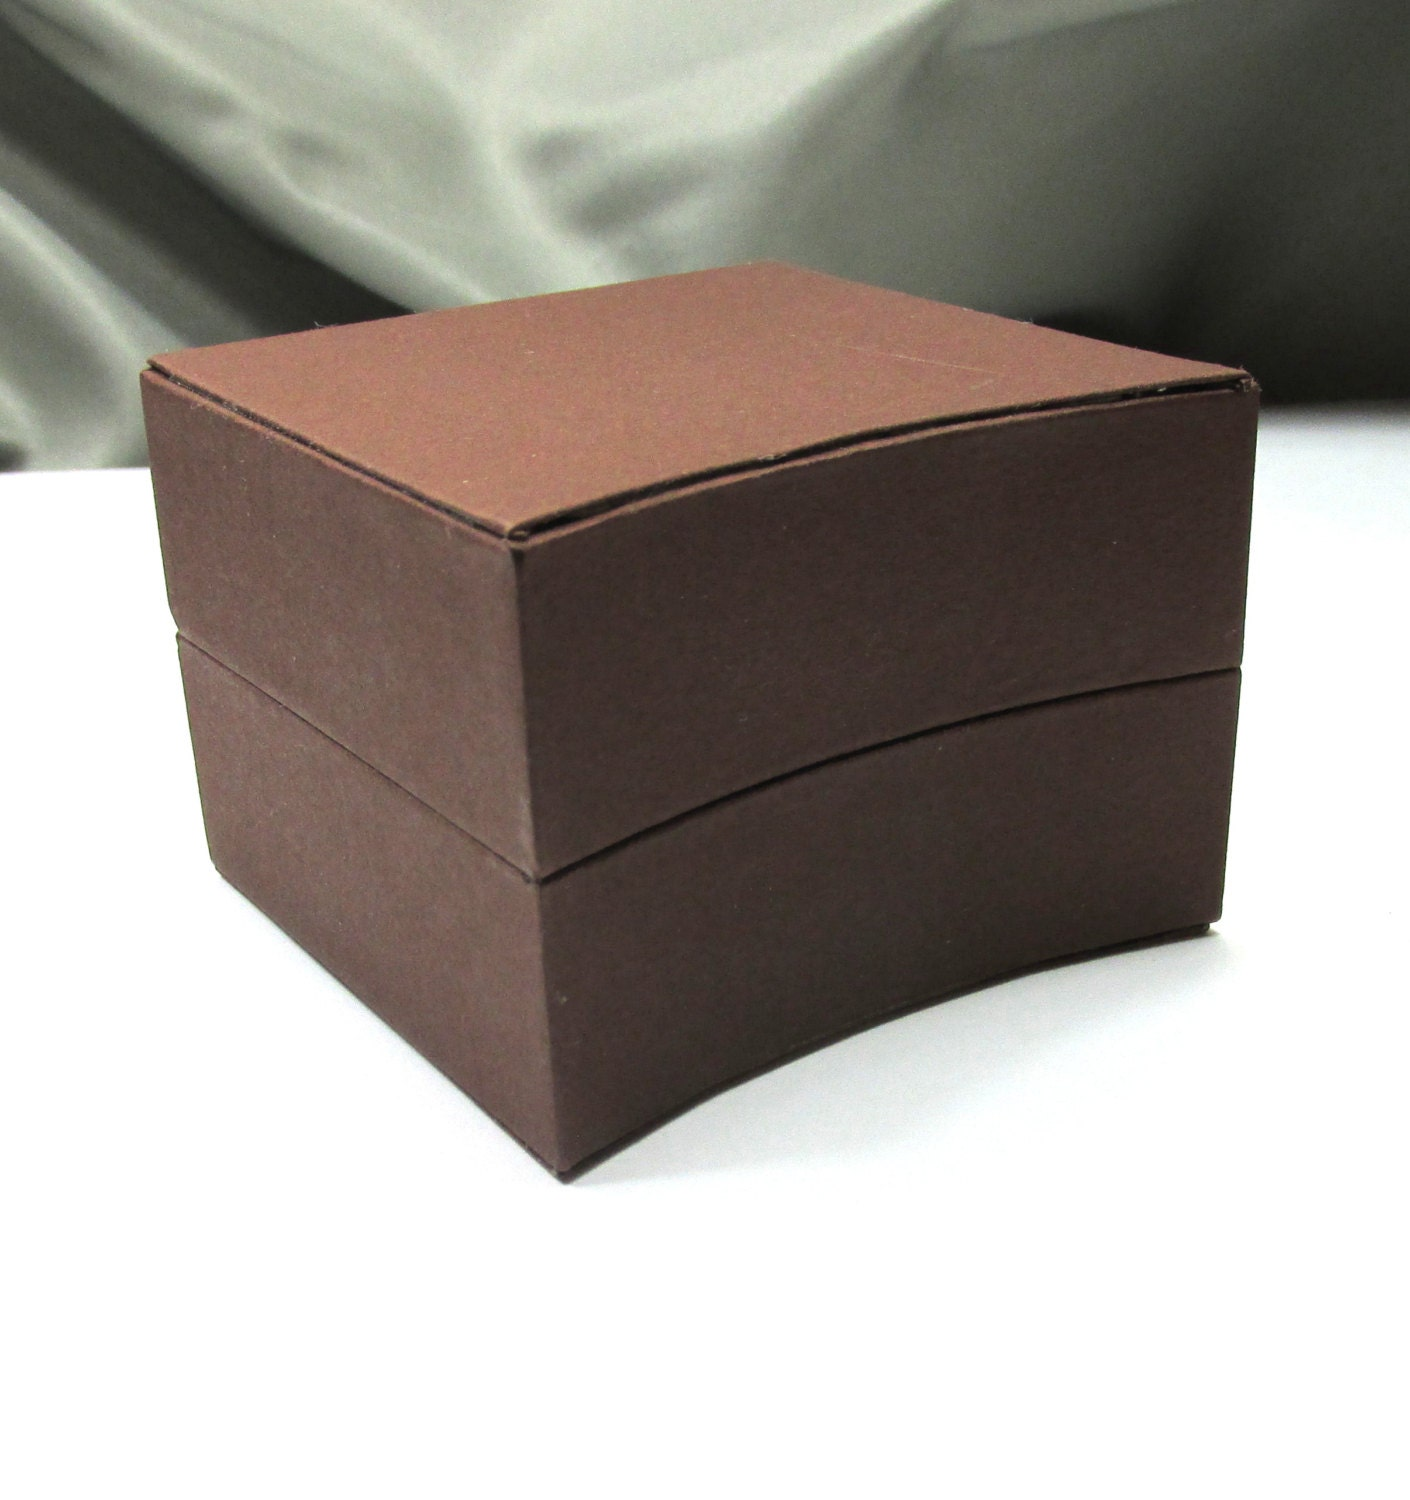 1 Small Jewelry Gift Box Earring Gift Box Brown With